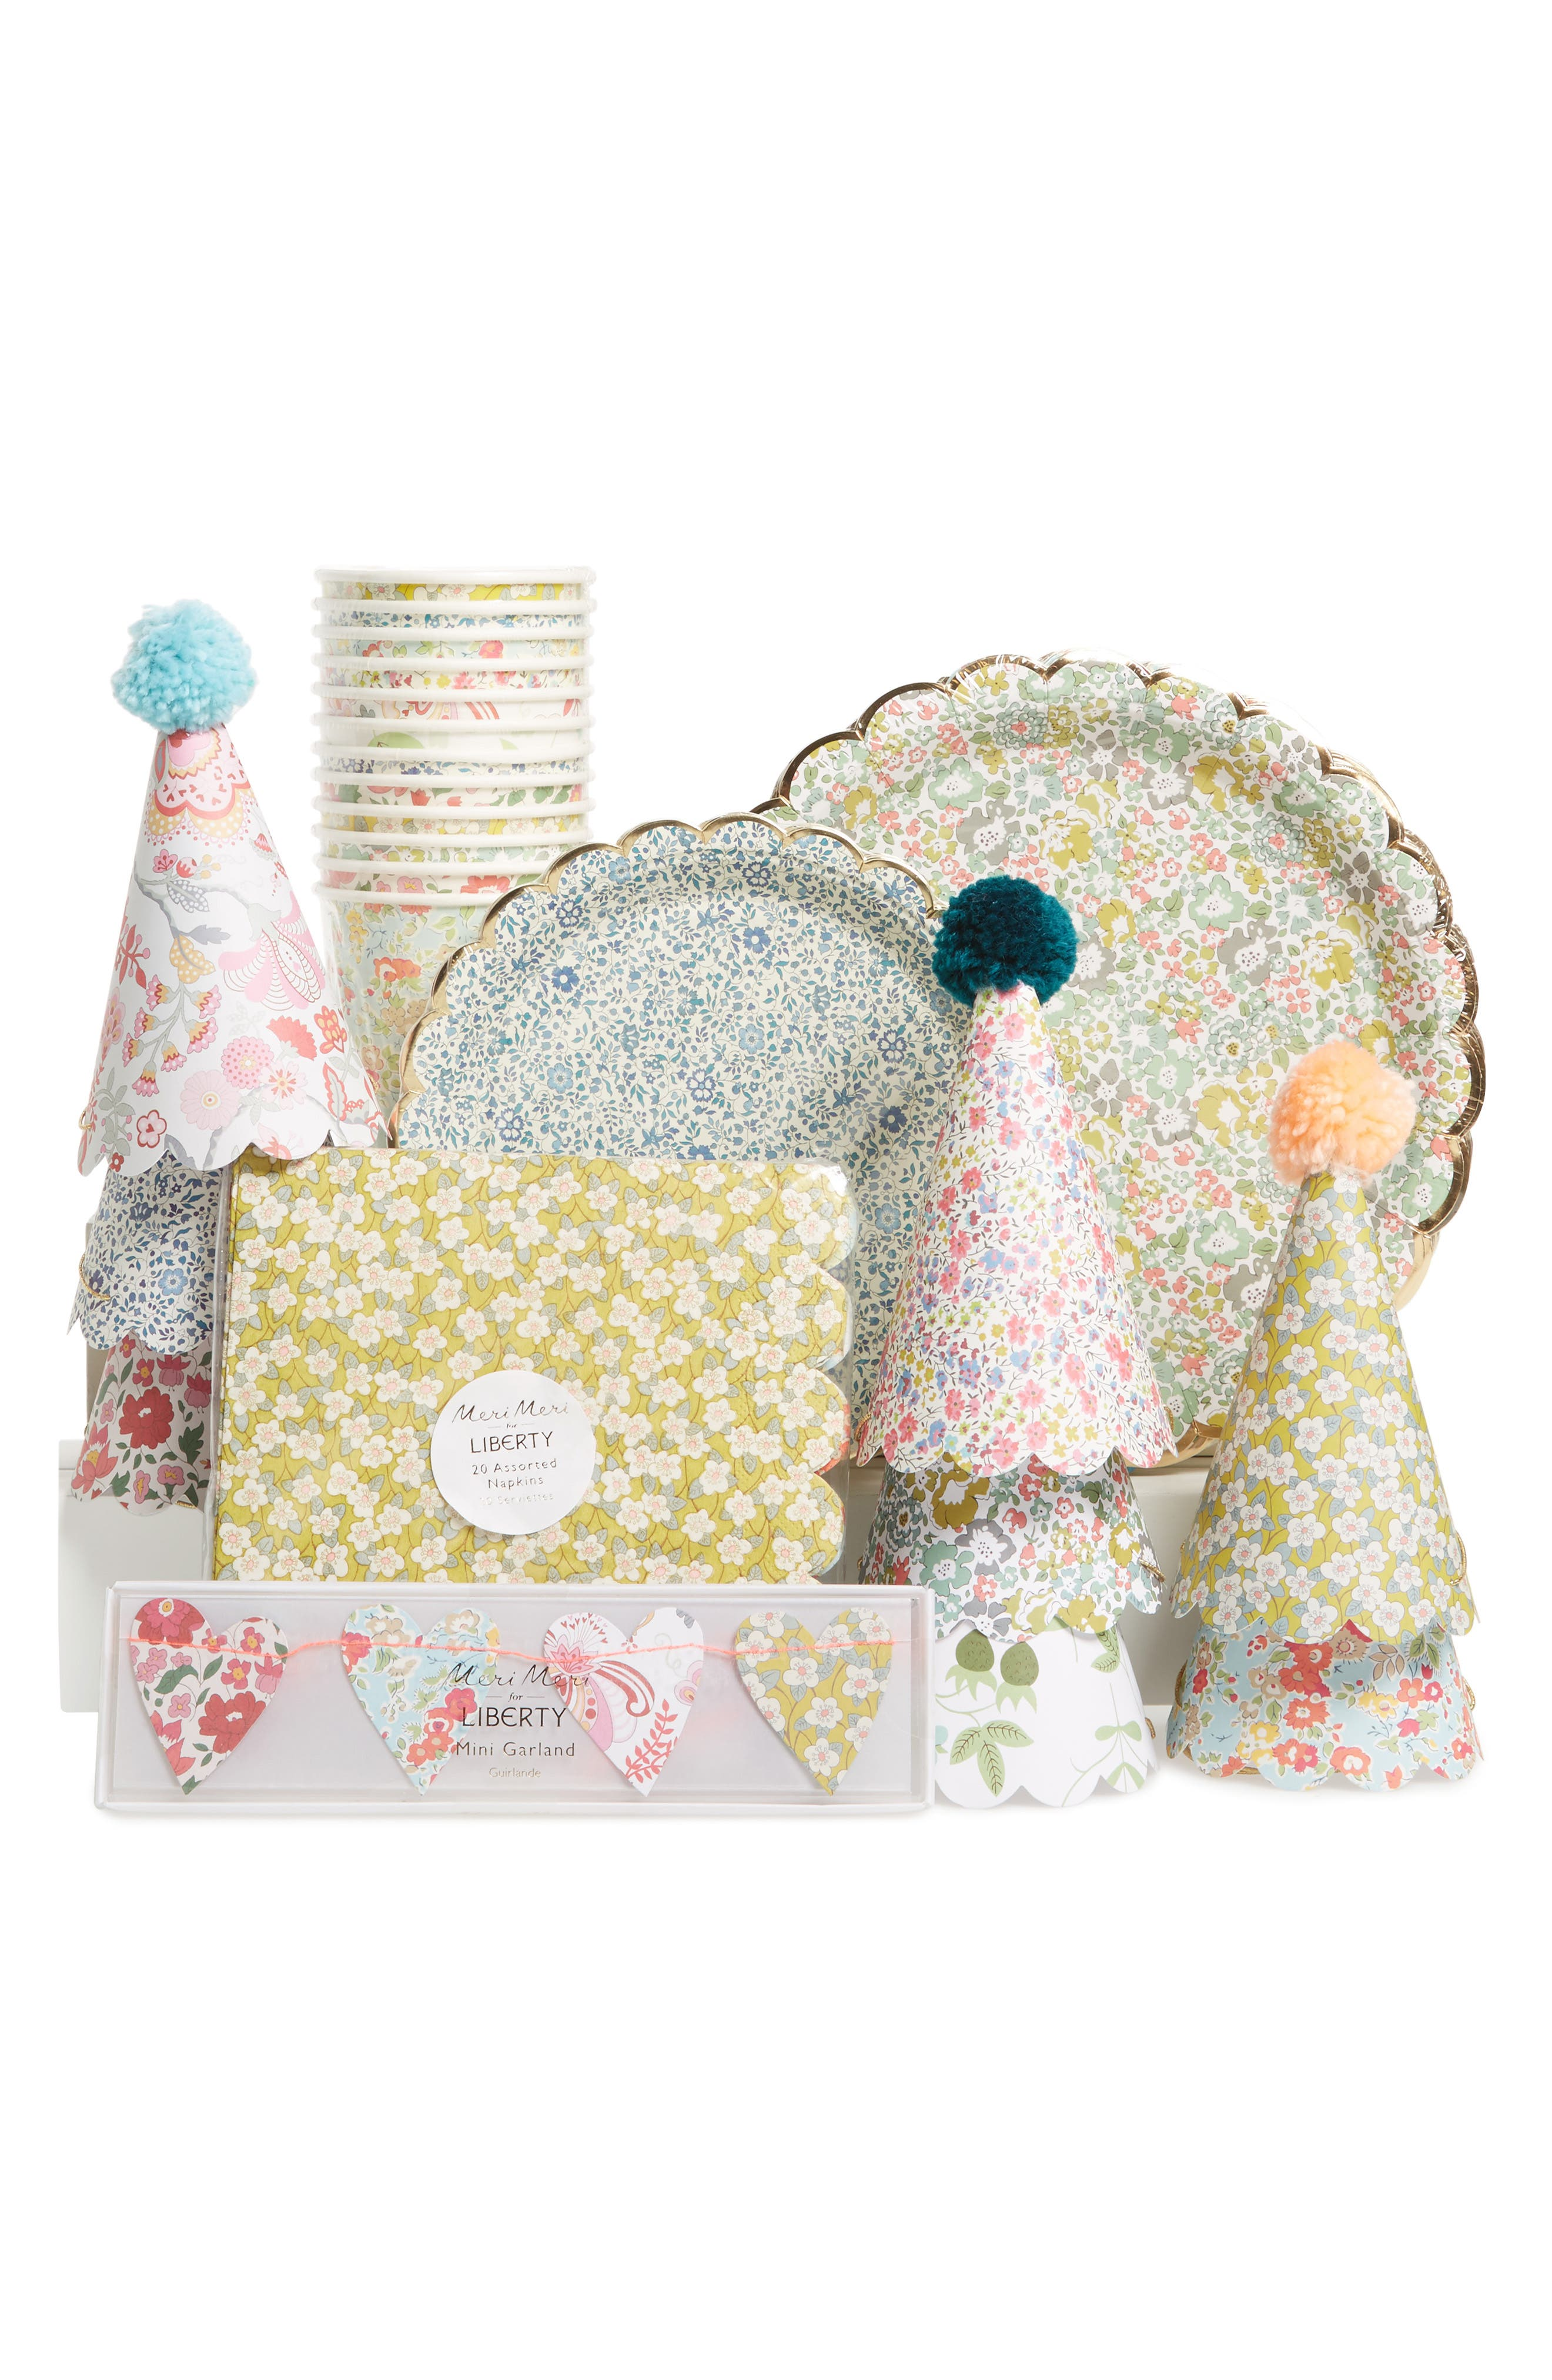 Meri Meri x Liberty Decoration Party Bundle